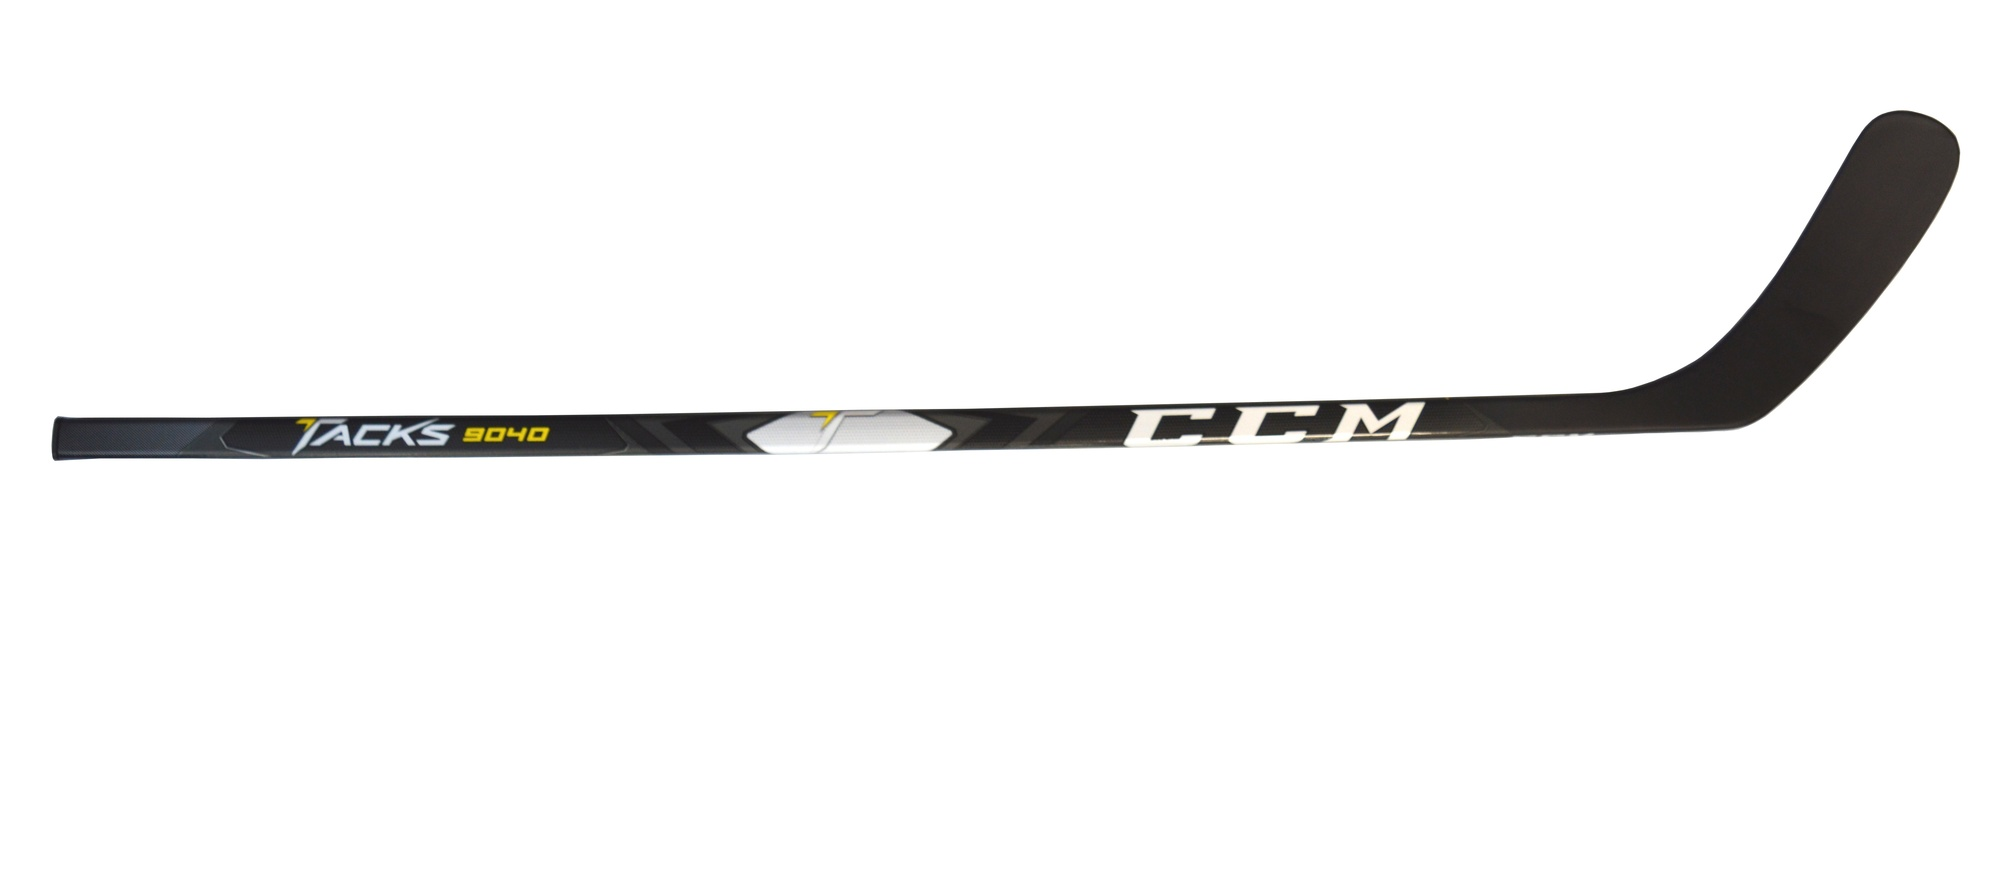 Hokejka CCM Tacks 9040 INT, Intermediate, 65, R, P29